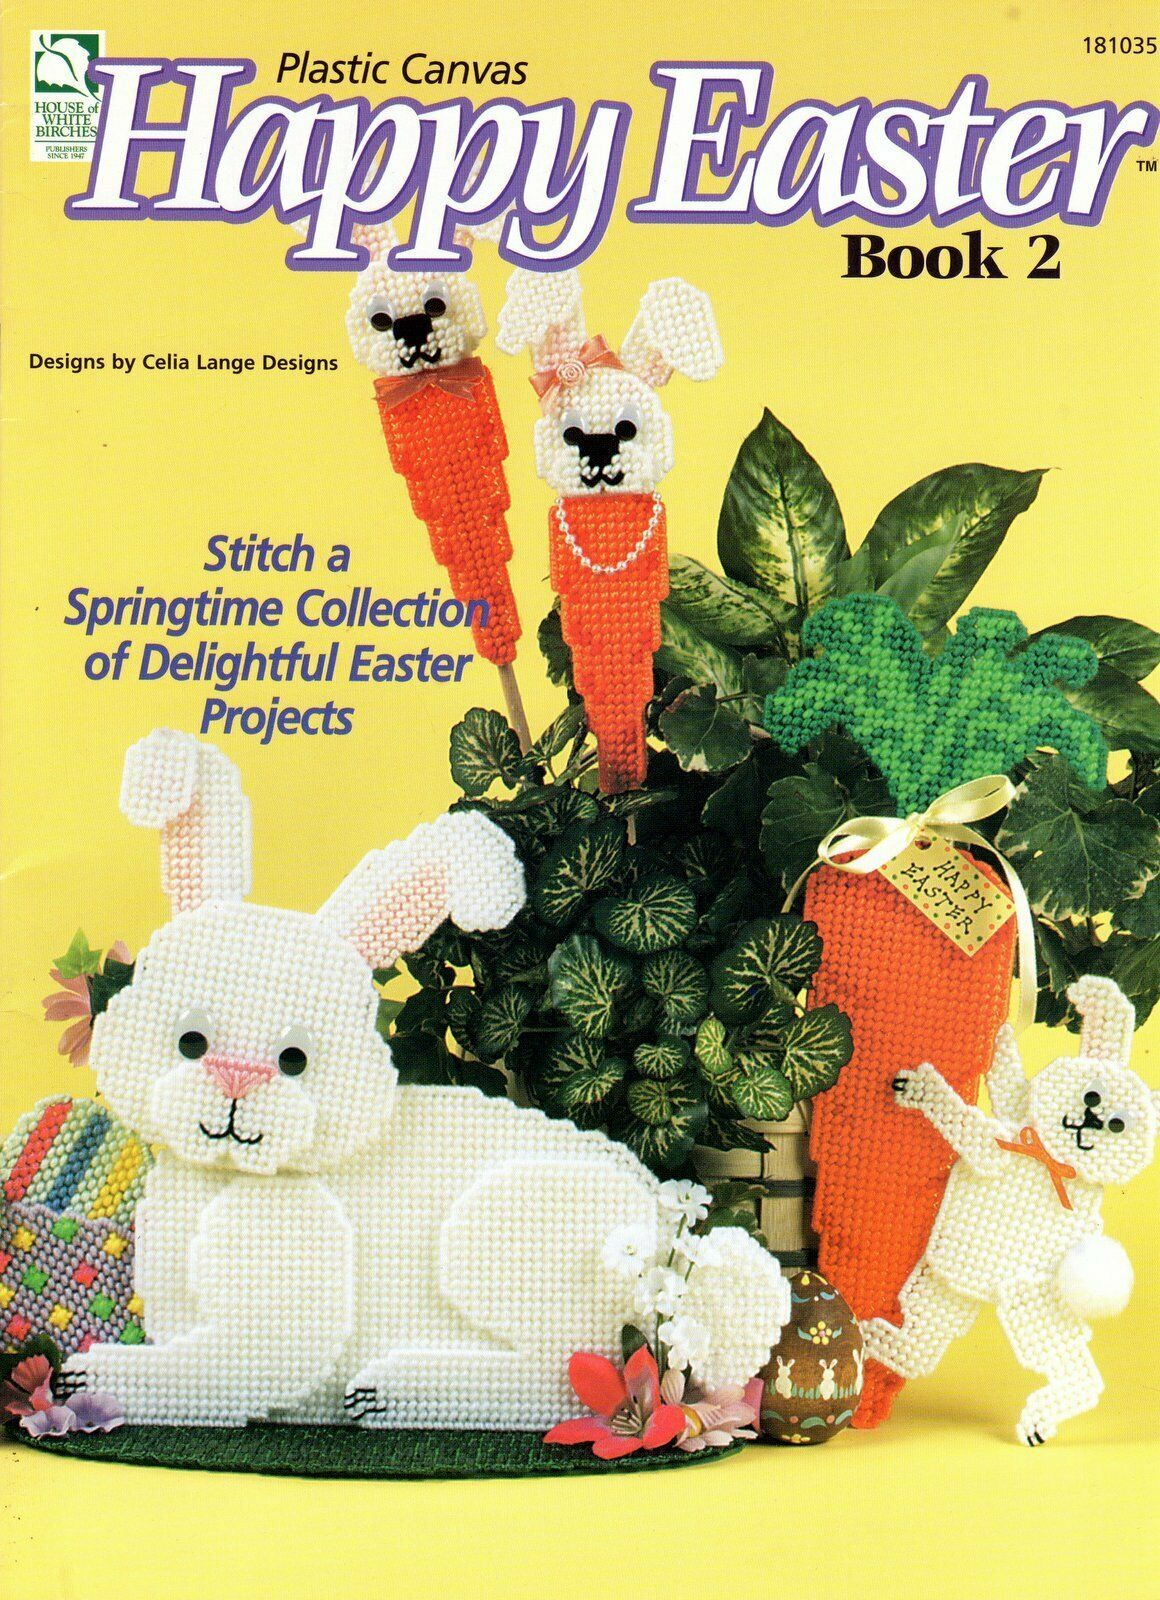 Happy Easter 2 in Plastic Canvas by Celia Lange House of White Birches #181035 - $6.95